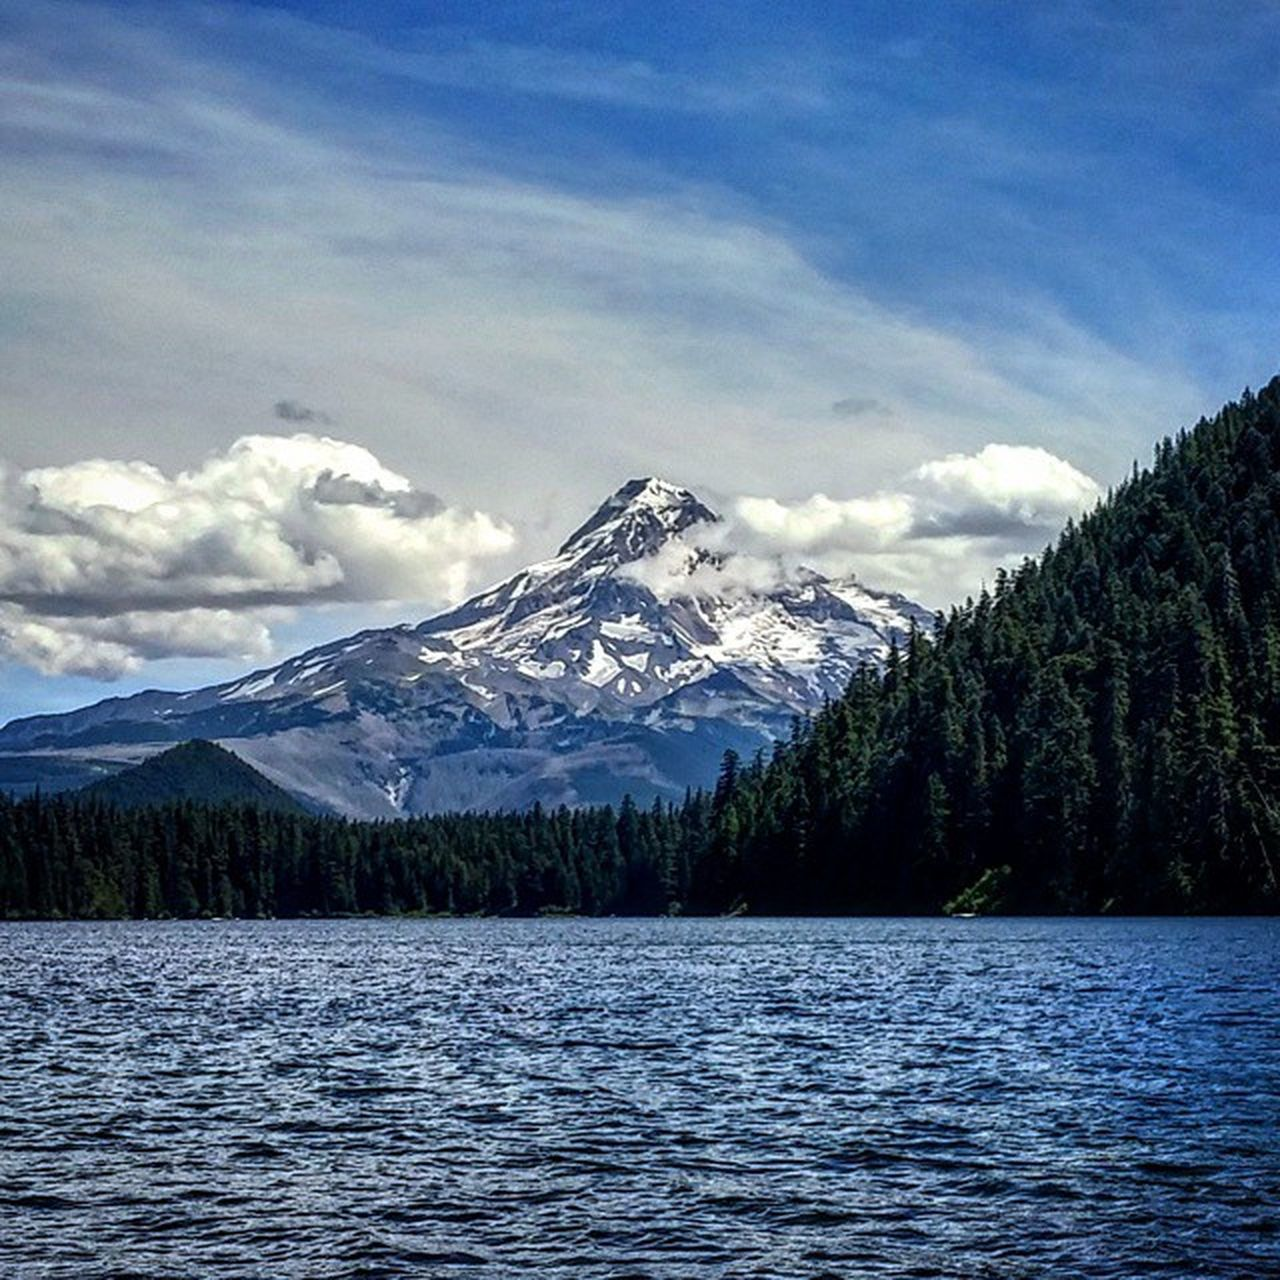 Mt. Hood from Lost Lake MtHood Mountain Mountains Lake LostLake Intheclouds Golivexplore Oregonnw PNW Pacificnorthwest Scenic ExploreEverything Explore Hiking Hikingadventures Feature Oregonexplored USA Usfs Mthoodnationalforest